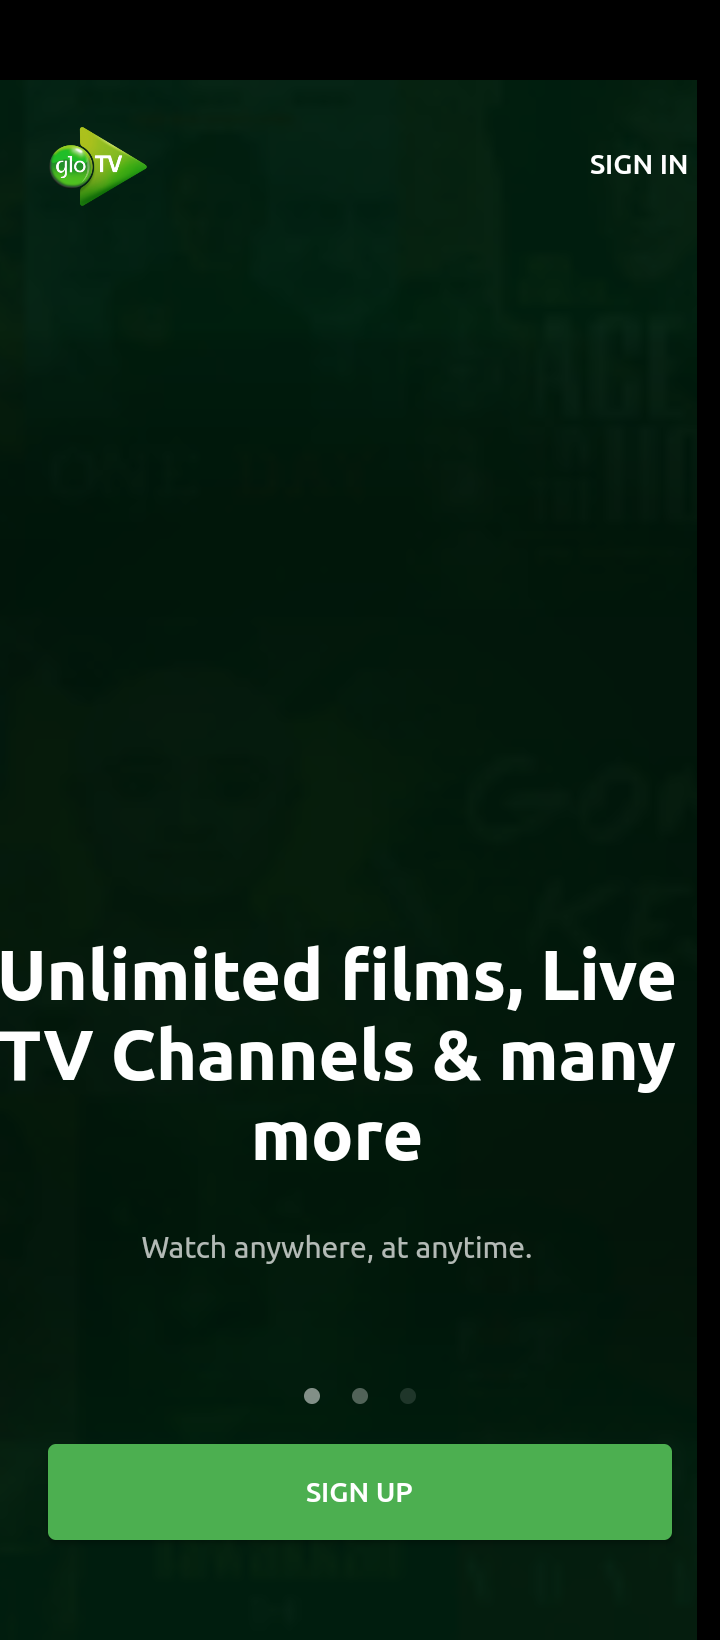 Sign up page from the GLO-TV Mobile App